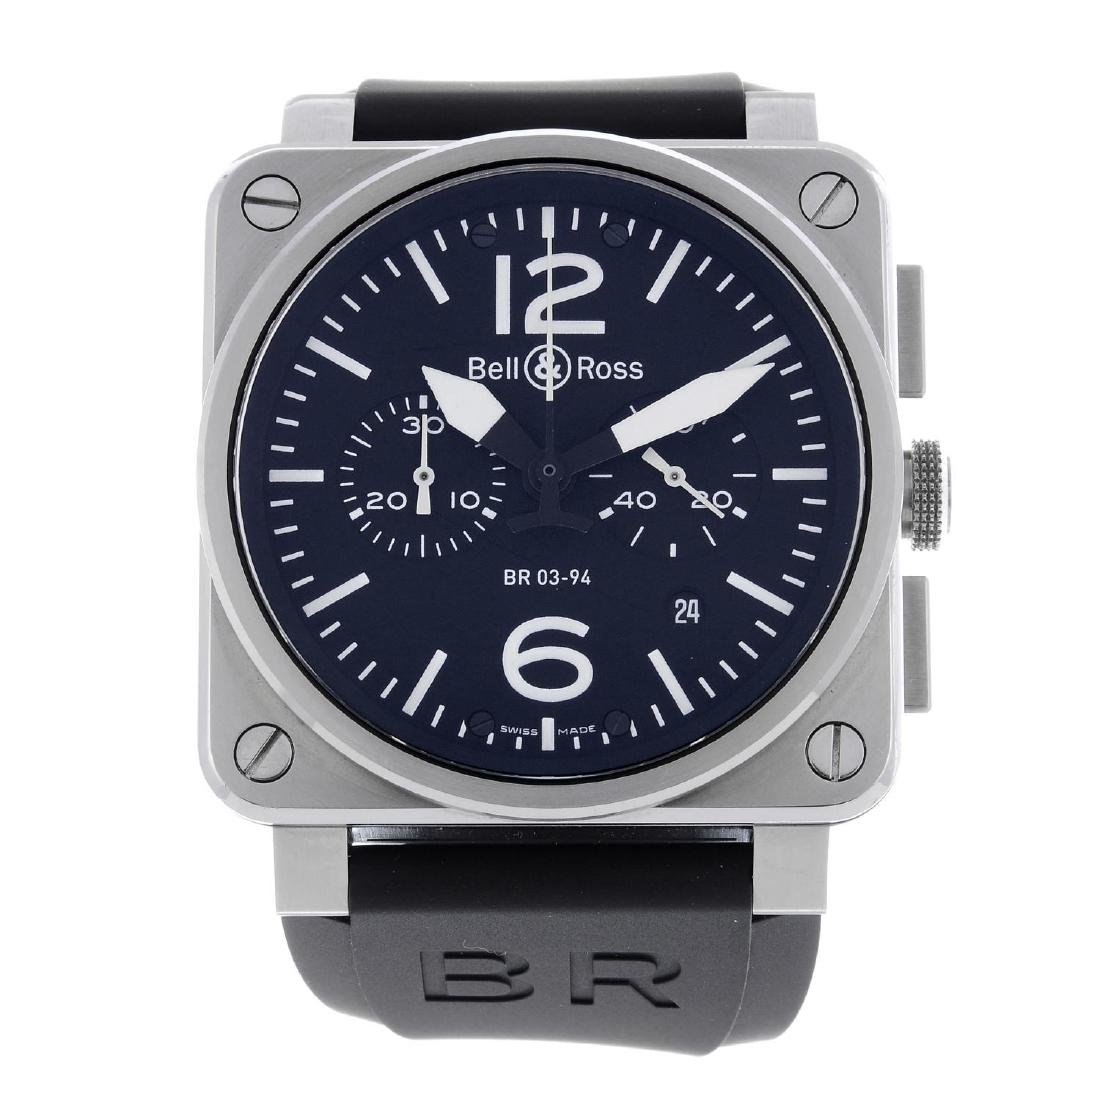 BELL & ROSS - a gentleman's Aviation chronograph wrist